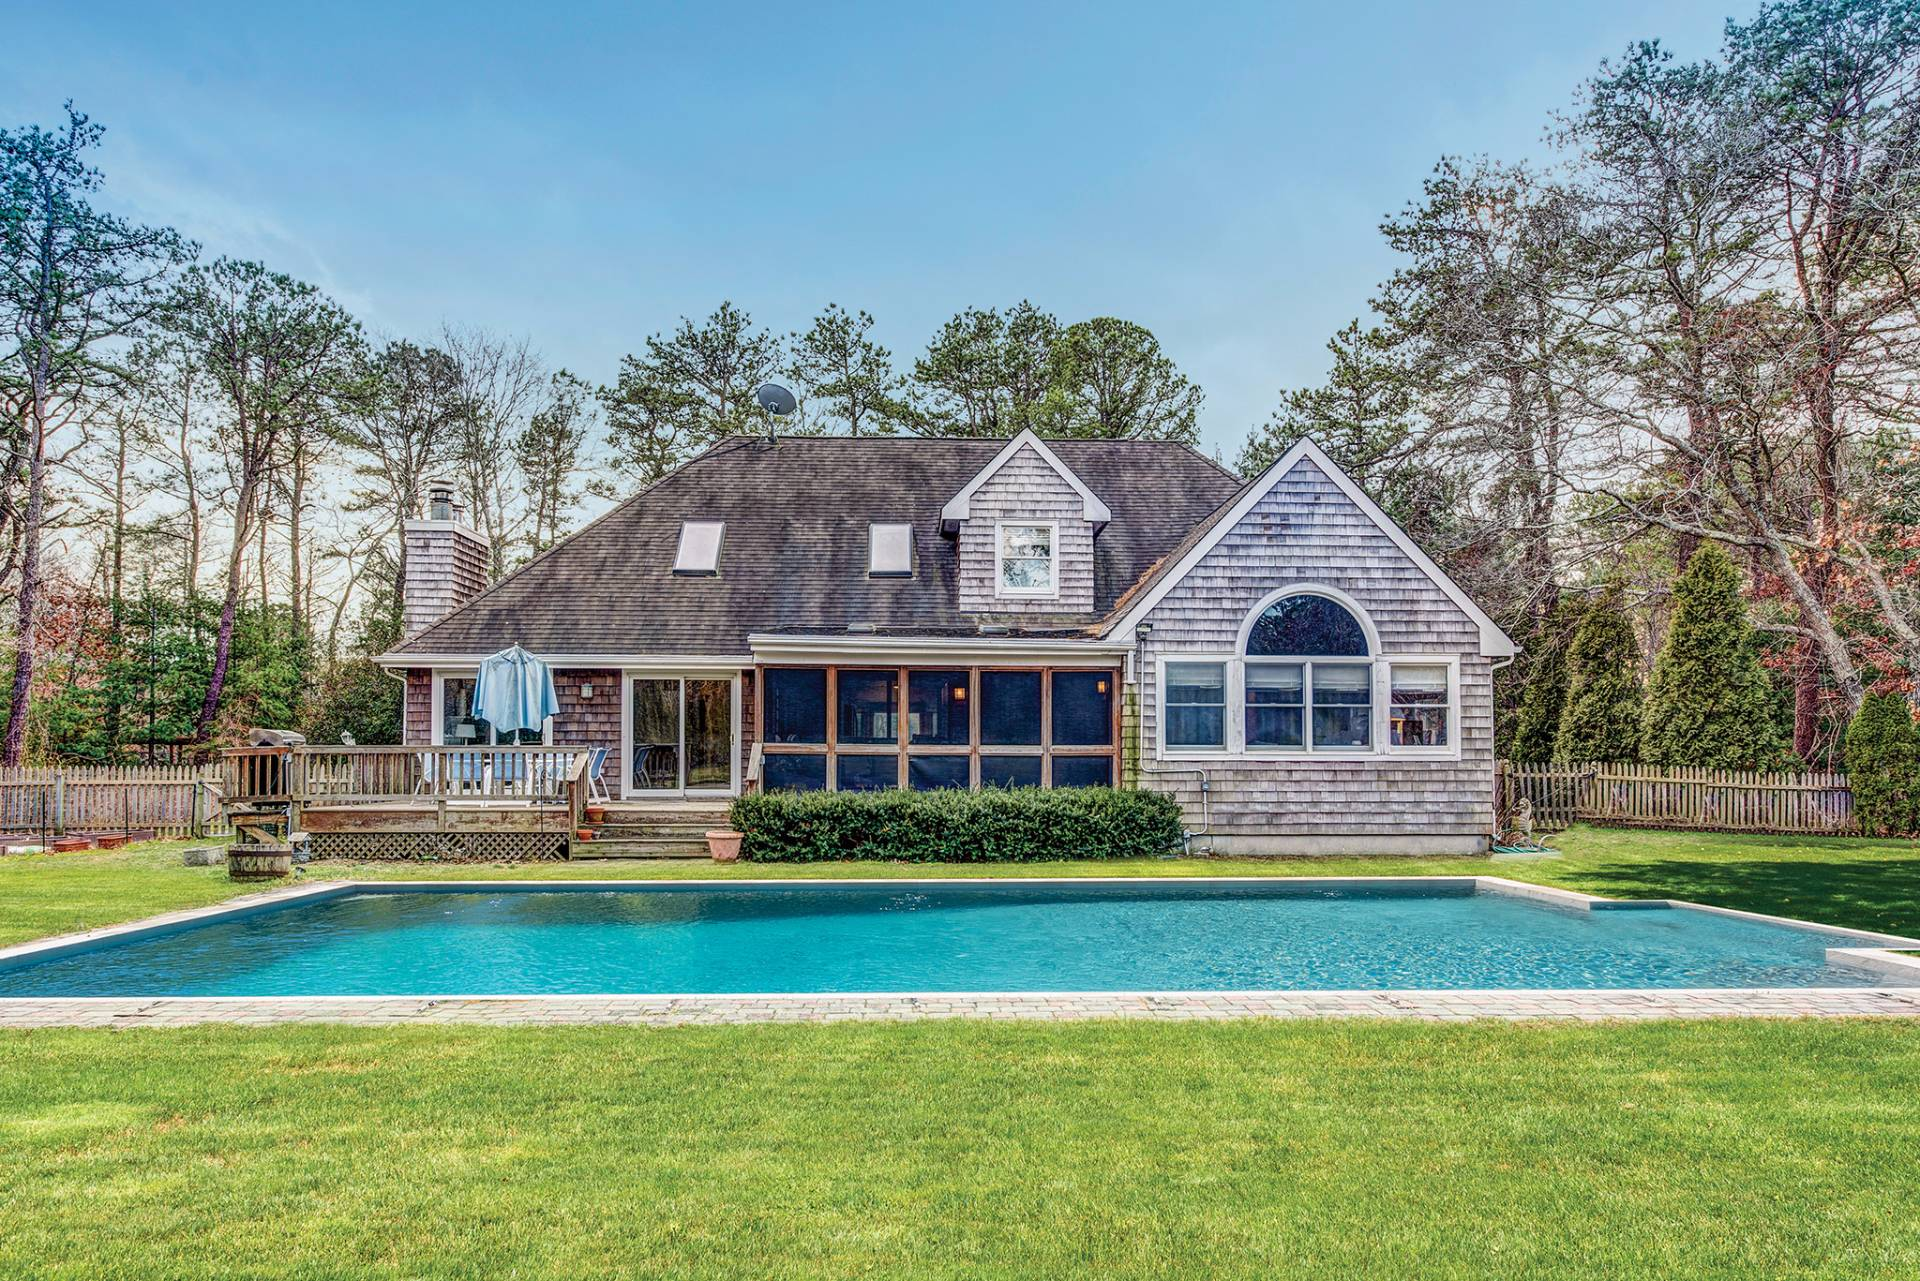 Single Family Home for Sale at East Quogue Postmodern 11 Amy's Path, East Quogue, New York